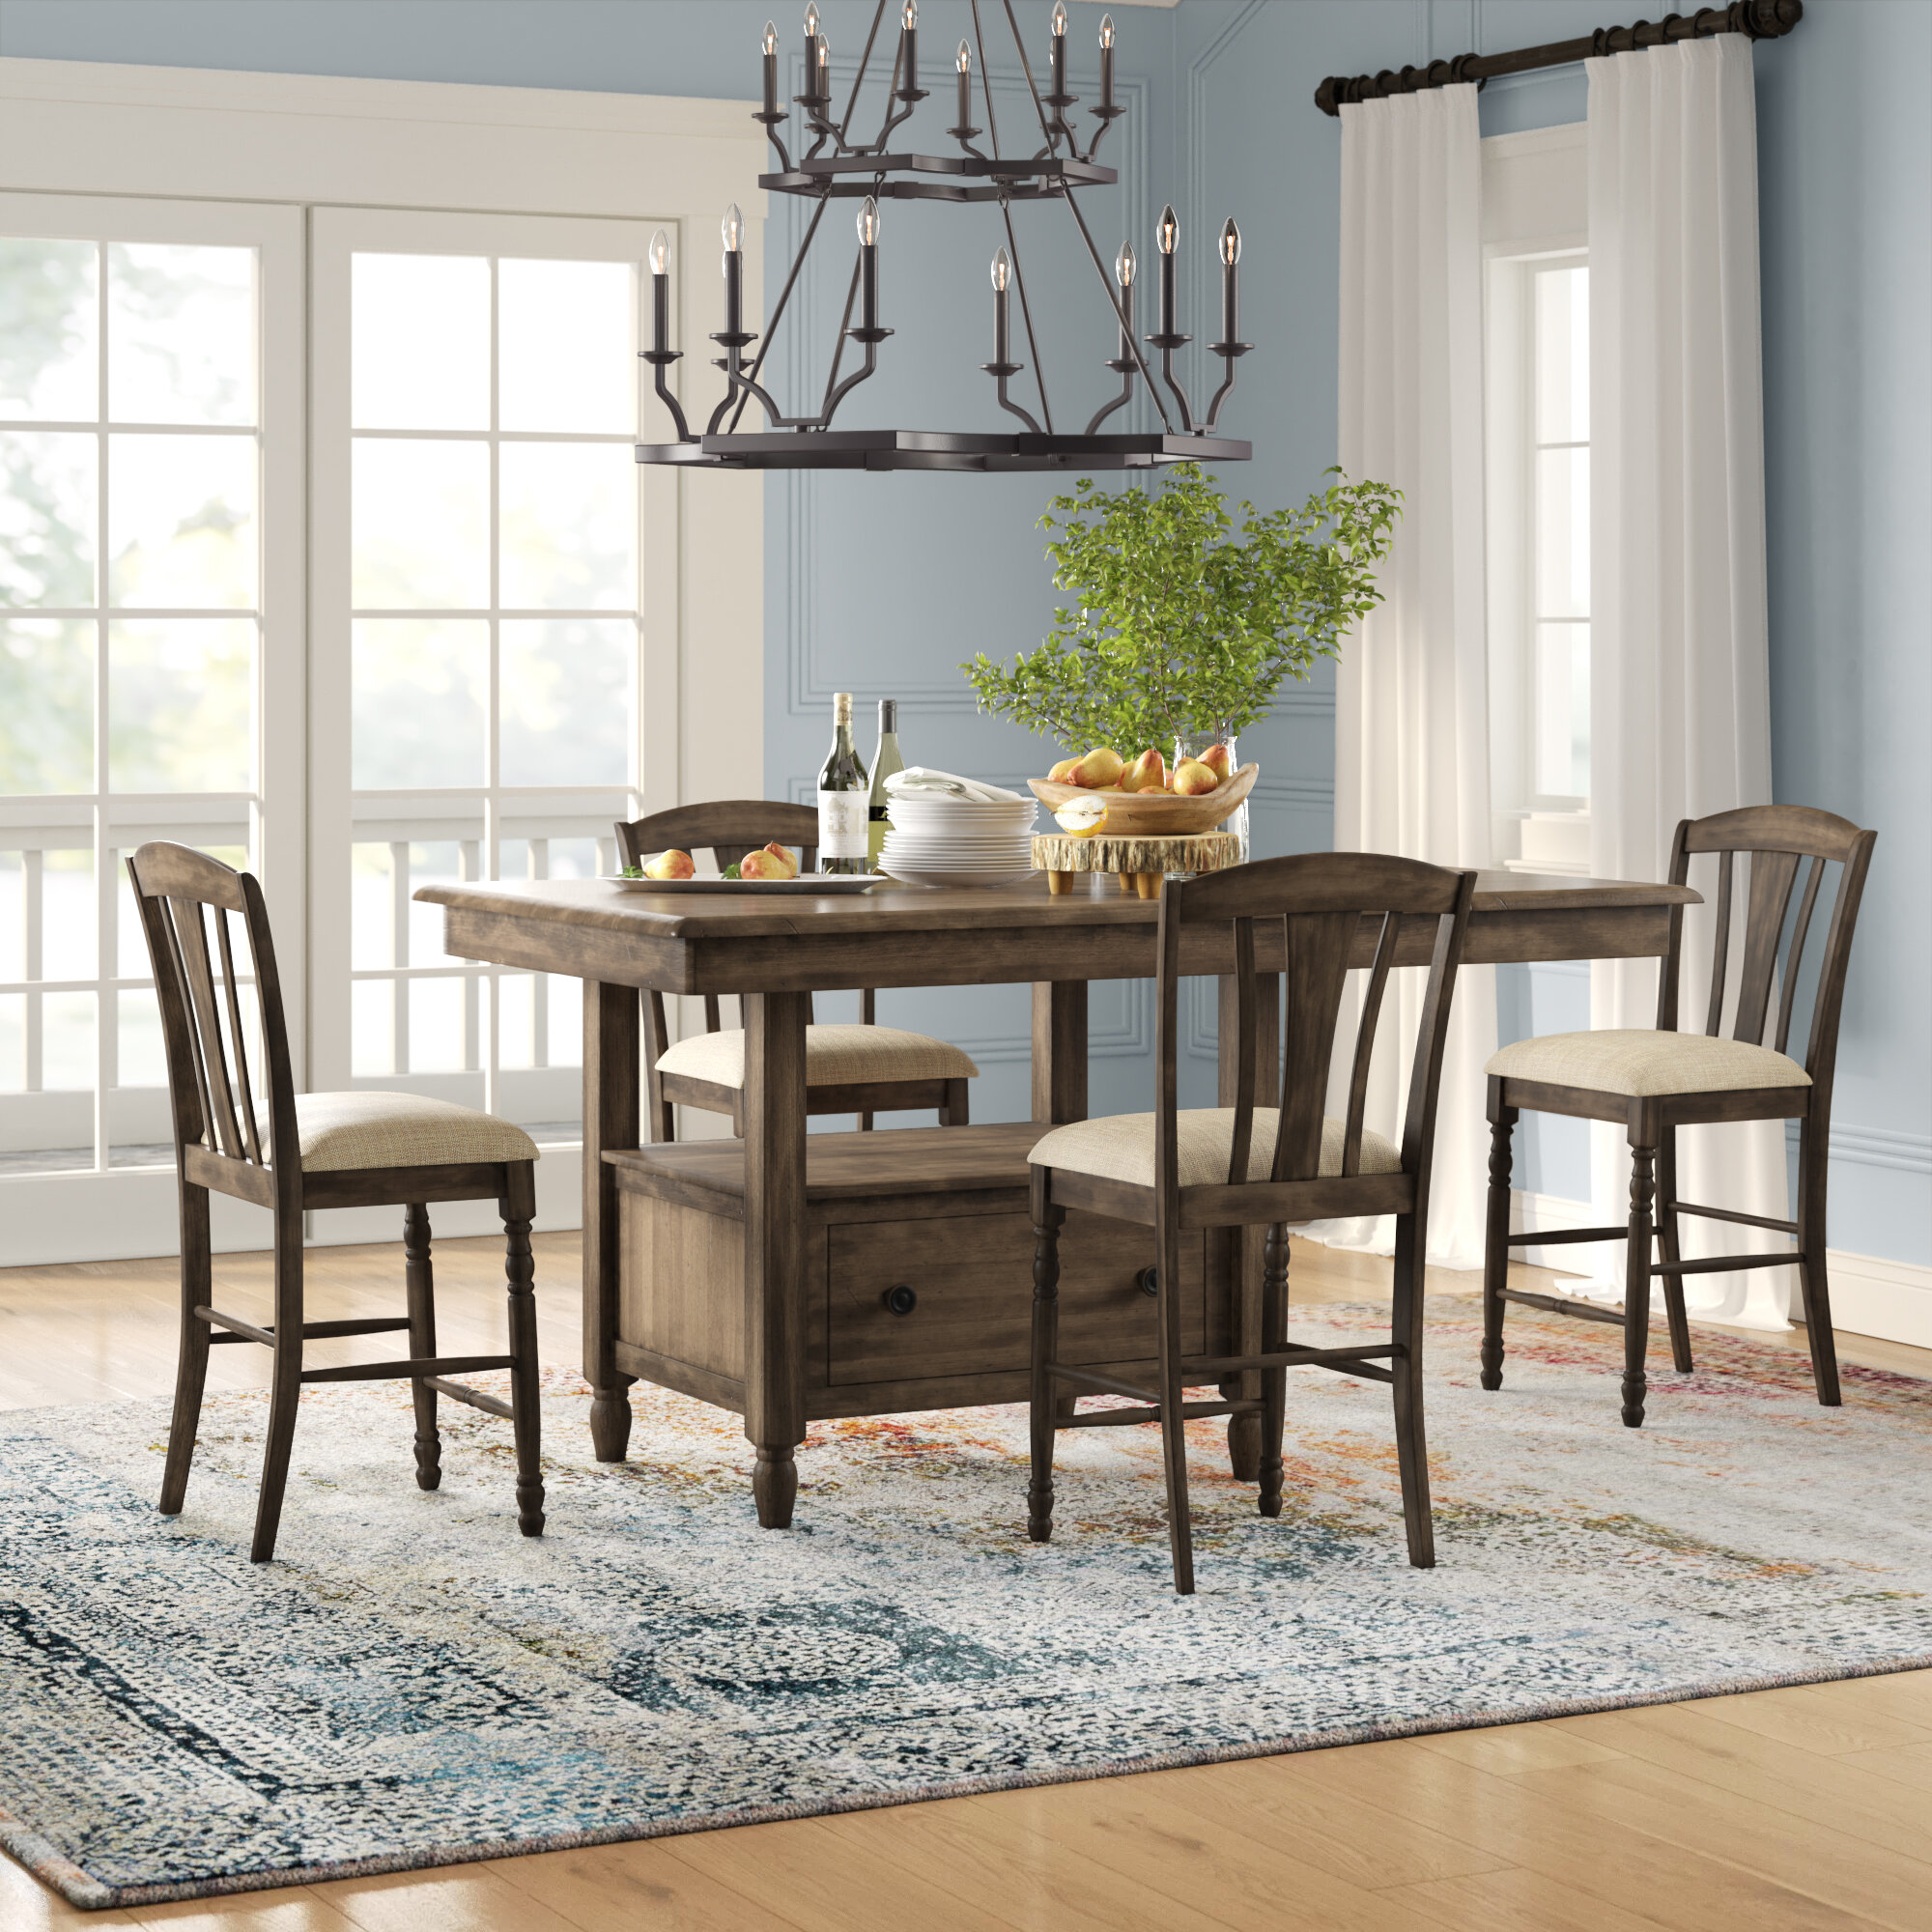 finest selection ad859 24c77 Perez 5 Piece Solid Wood Breakfast Nook Dining Set